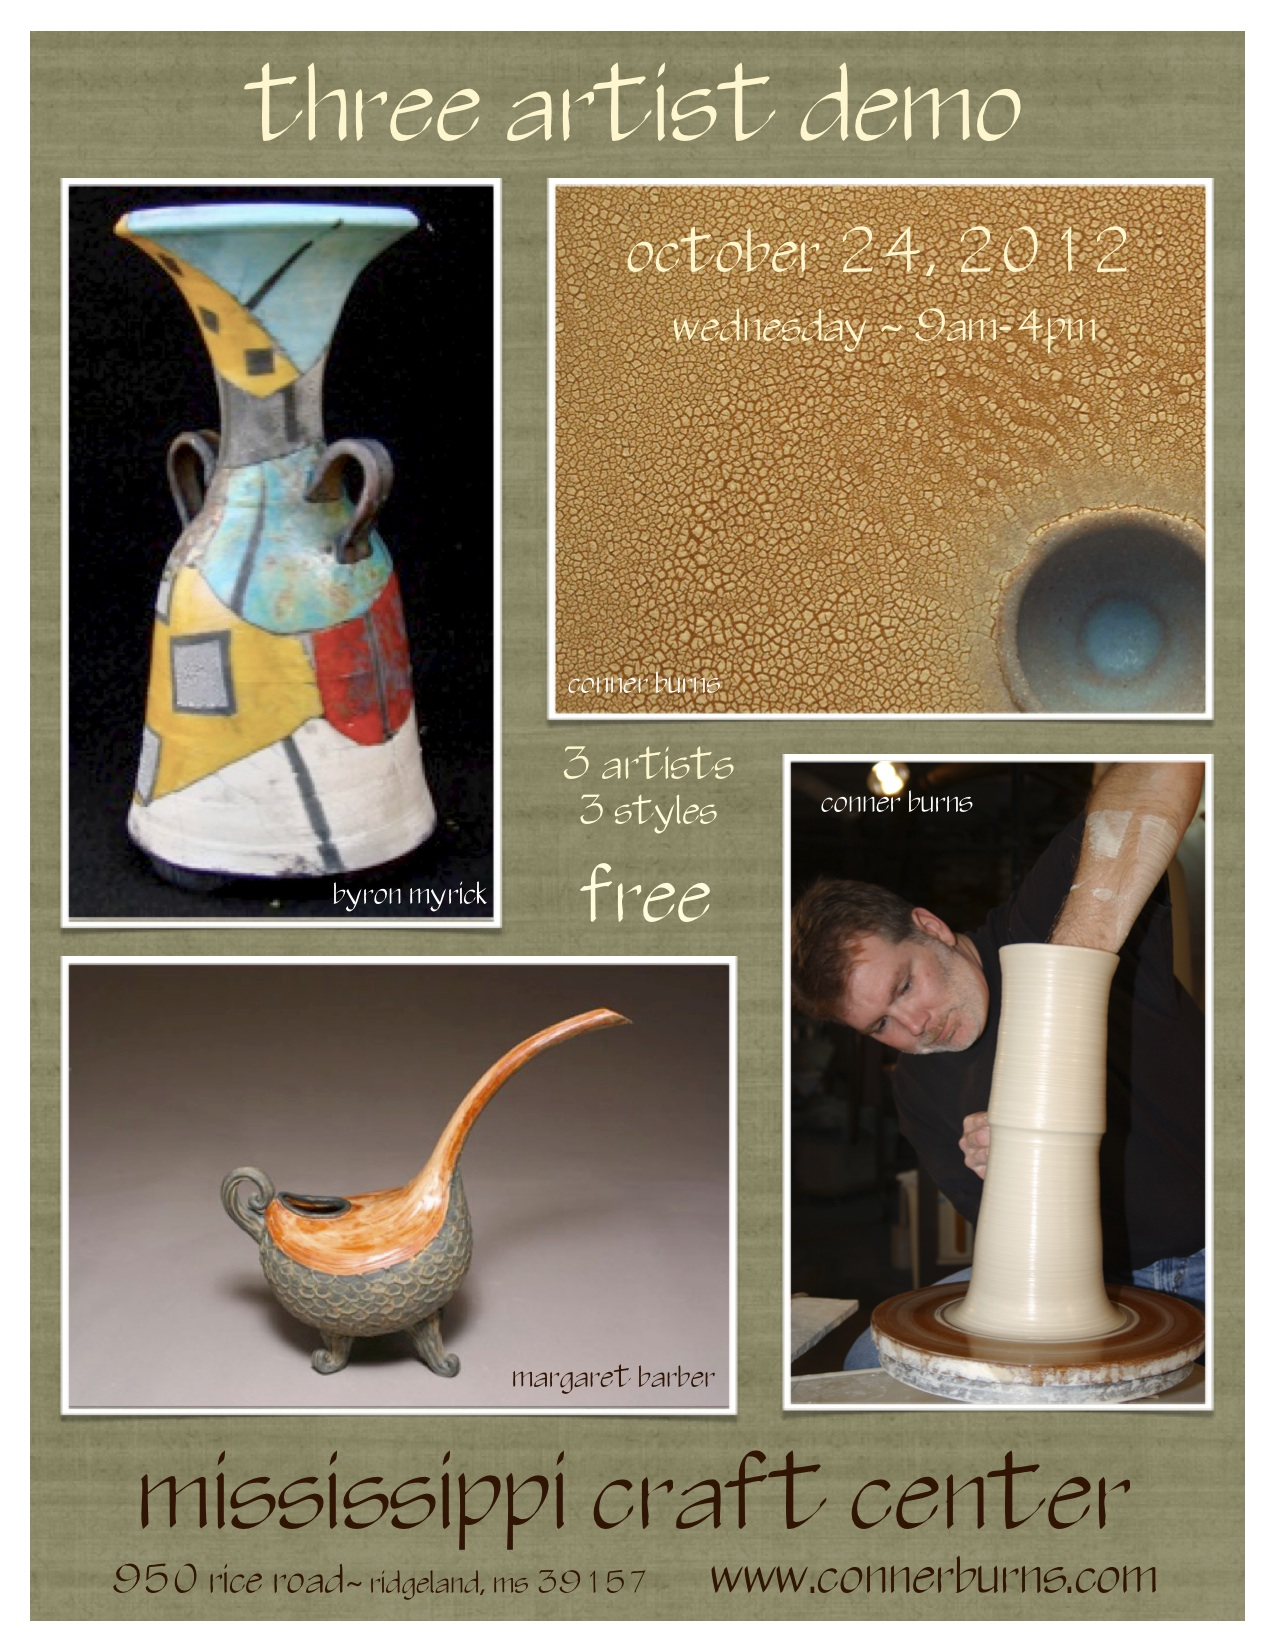 three artist demonstration at the mississippi craft center with conner burns, margaret barber and byron myrick